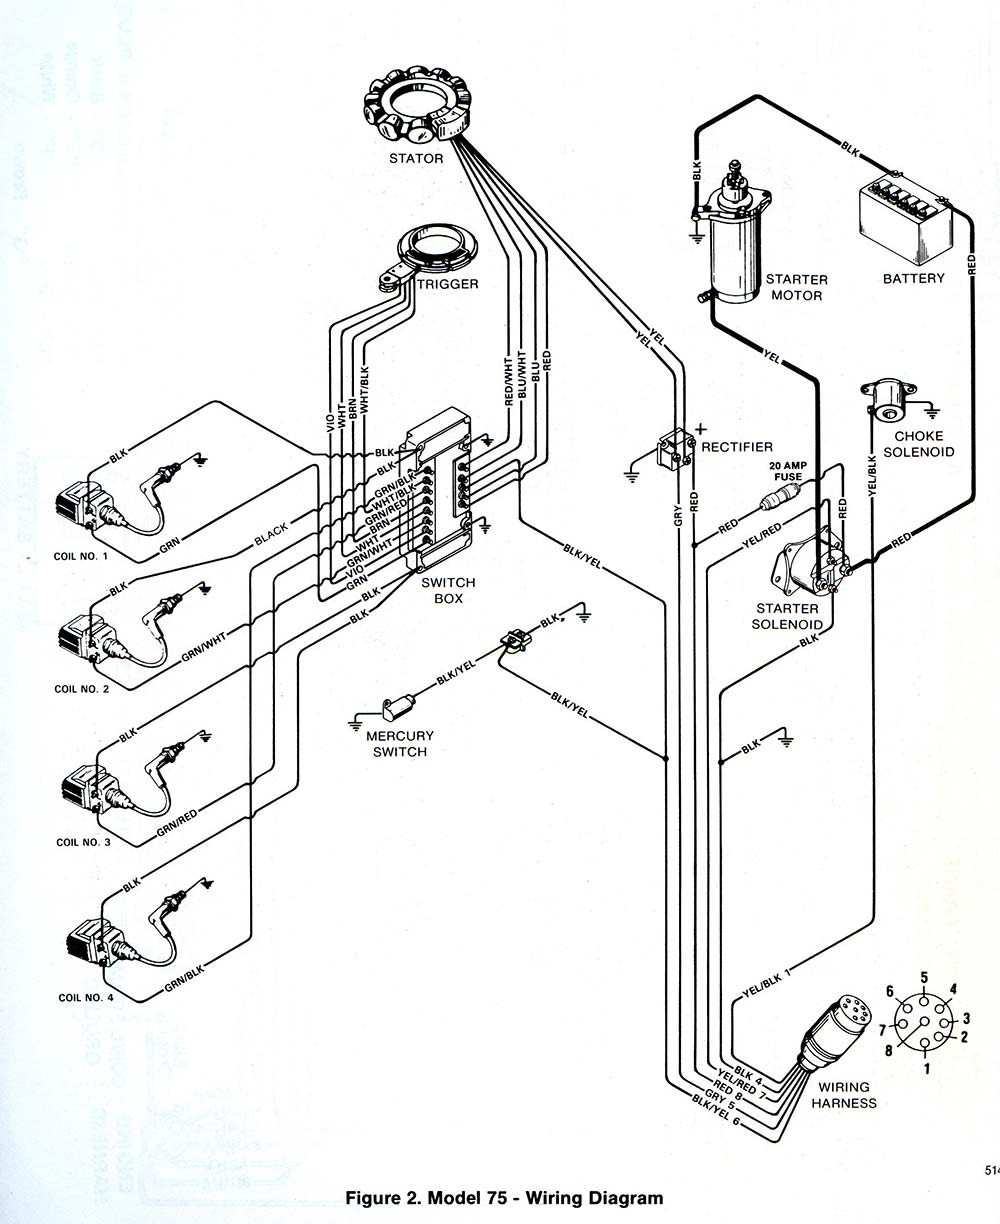 Mercury Outboard Wiring diagrams -- Mastertech Marin on yamaha 115 hp outboard wiring diagram, yamaha 150 outboard wiring diagram, universal ignition switch diagram, mercury ignition wiring diagram, yamaha outboard engine wiring diagram, yamaha outboard ignition switch parts, 1965 chevy ignition switch diagram, 5 pin ignition switch diagram, yamaha outboard ignition switch cover, yamaha outboard ignition switch assembly, yamaha outboard ignition keys, ignition starter switch diagram, 50 hp mercury outboard wiring diagram, yamaha outboard kill switch, yamaha outboard ignition switch replacement, yamaha outboard wiring diagram pdf, chrysler outboard ignition switch wiring diagram, 5 wire ignition switch diagram, johnson outboard ignition switch diagram, yamaha outboard control wiring diagram,